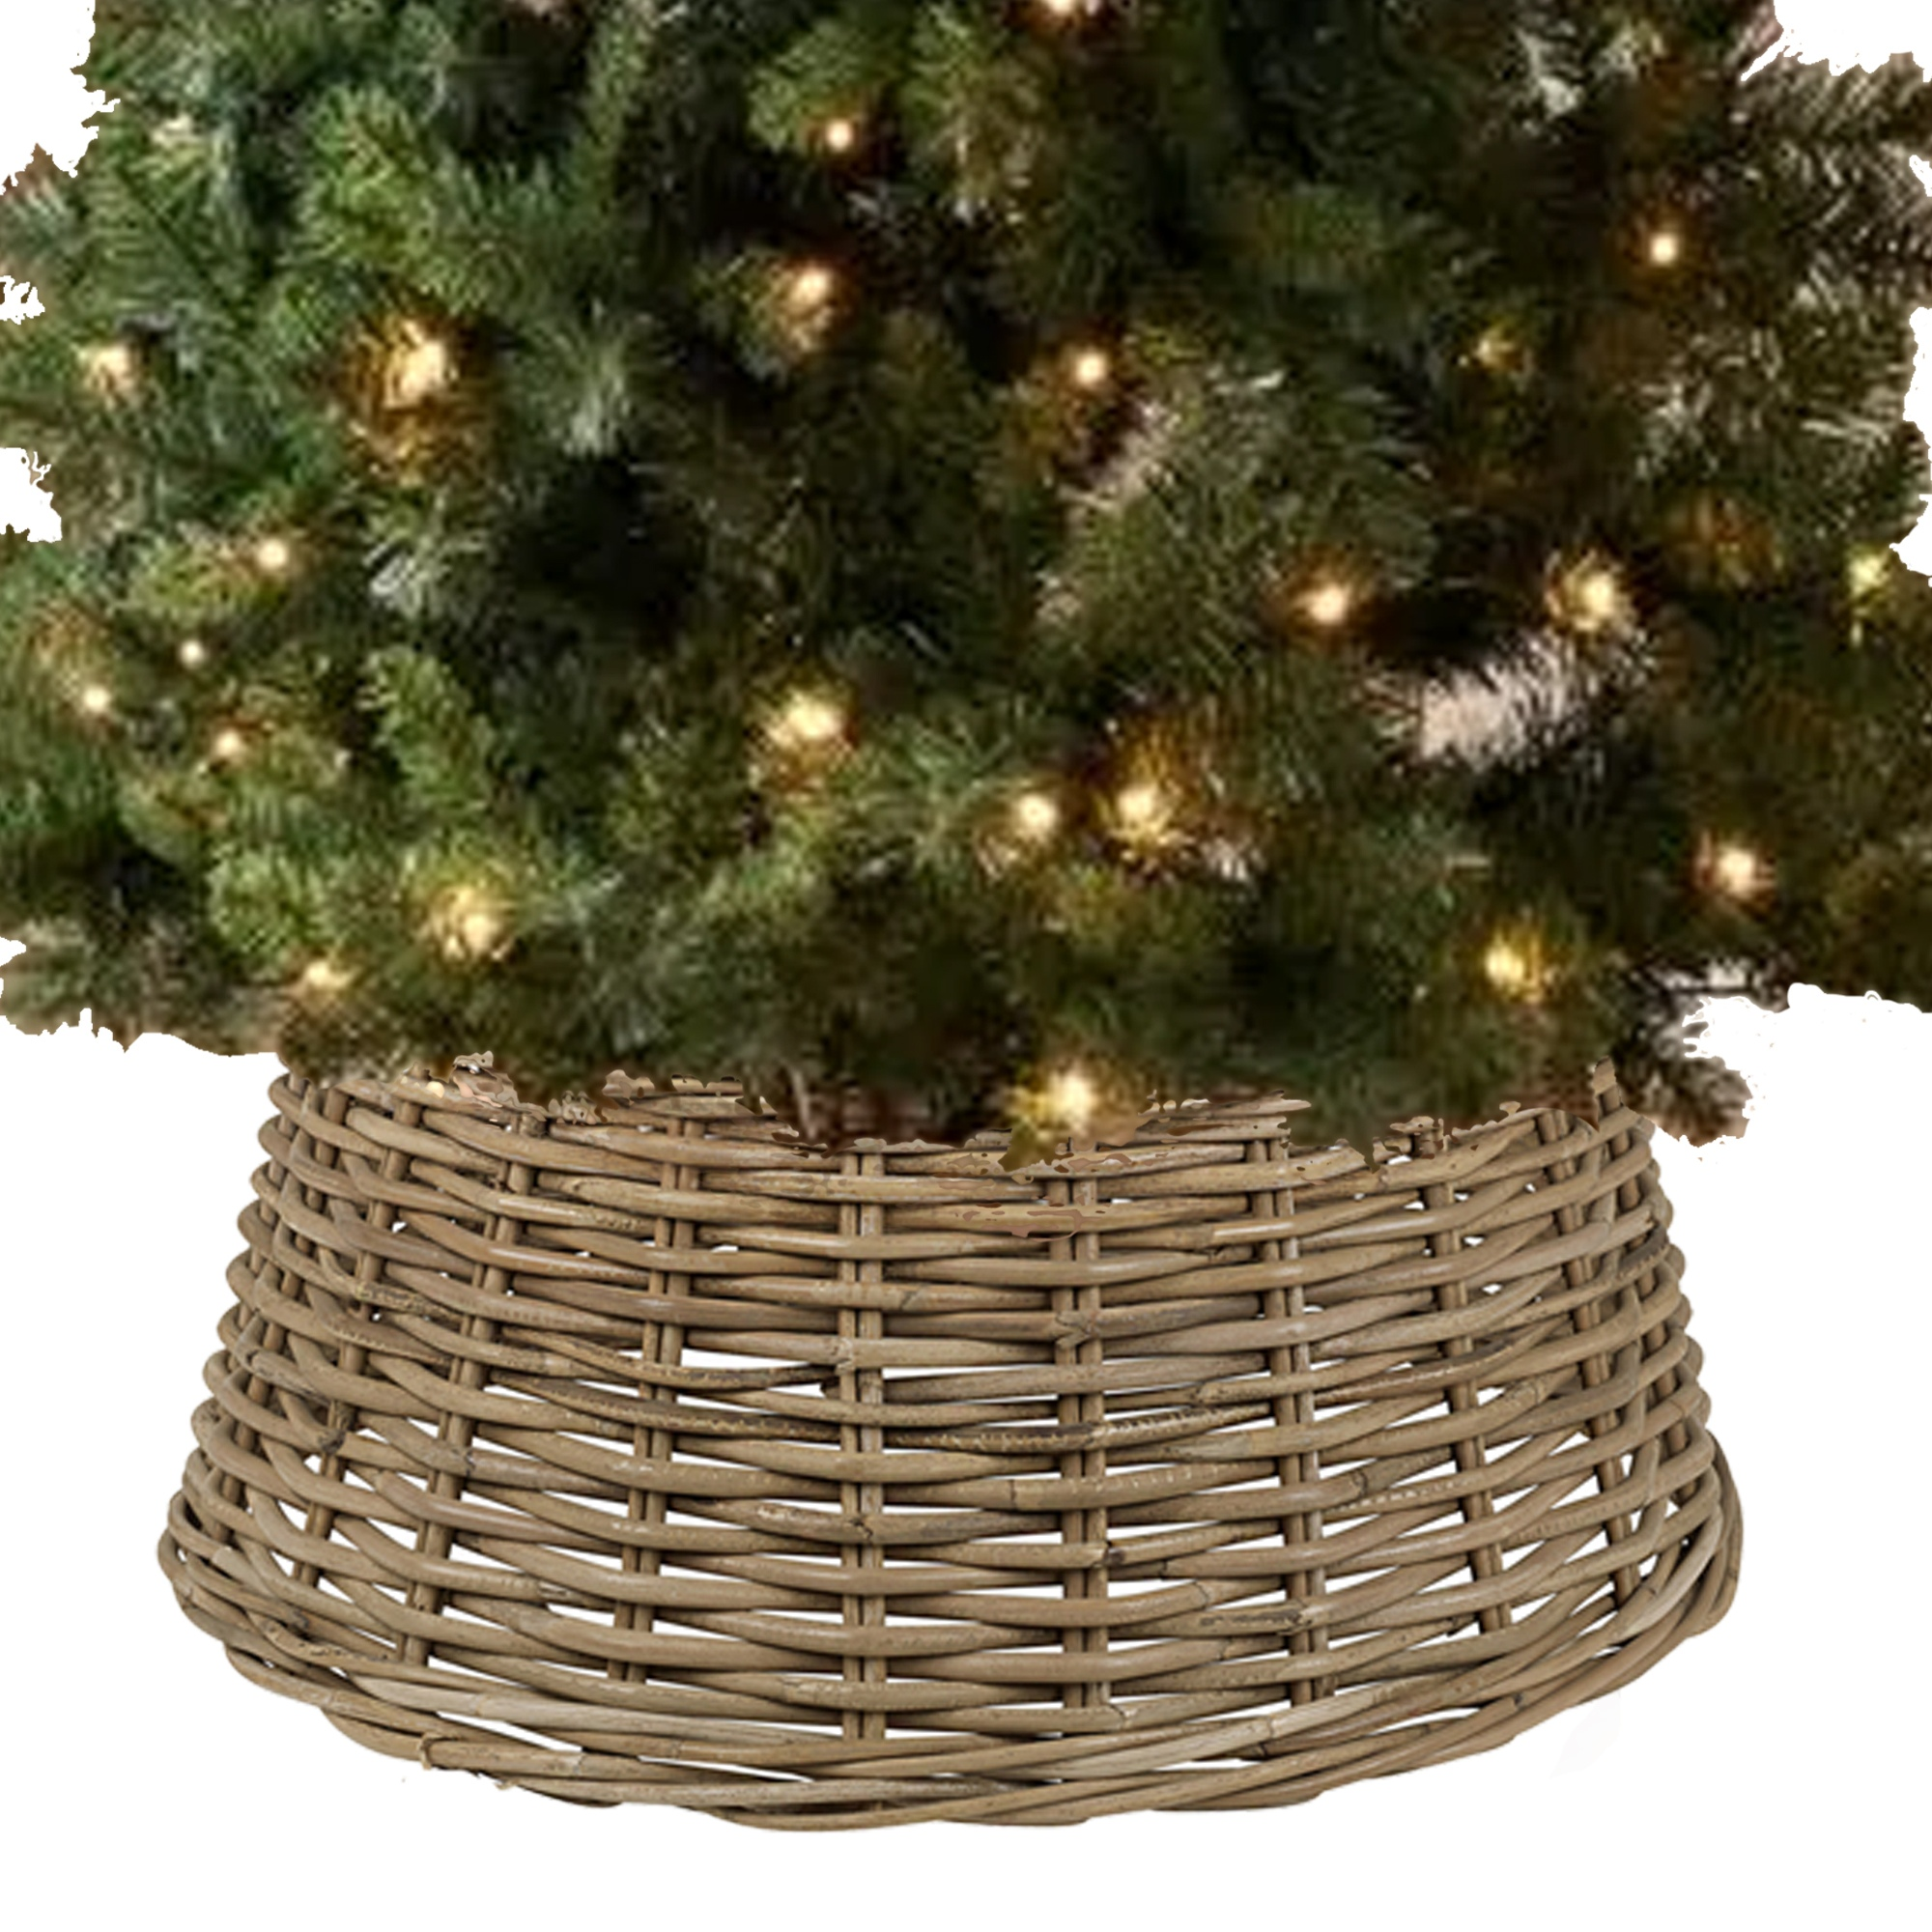 Large Willow Christmas Tree Skirt Xmas Rattan Wicker Natural Base